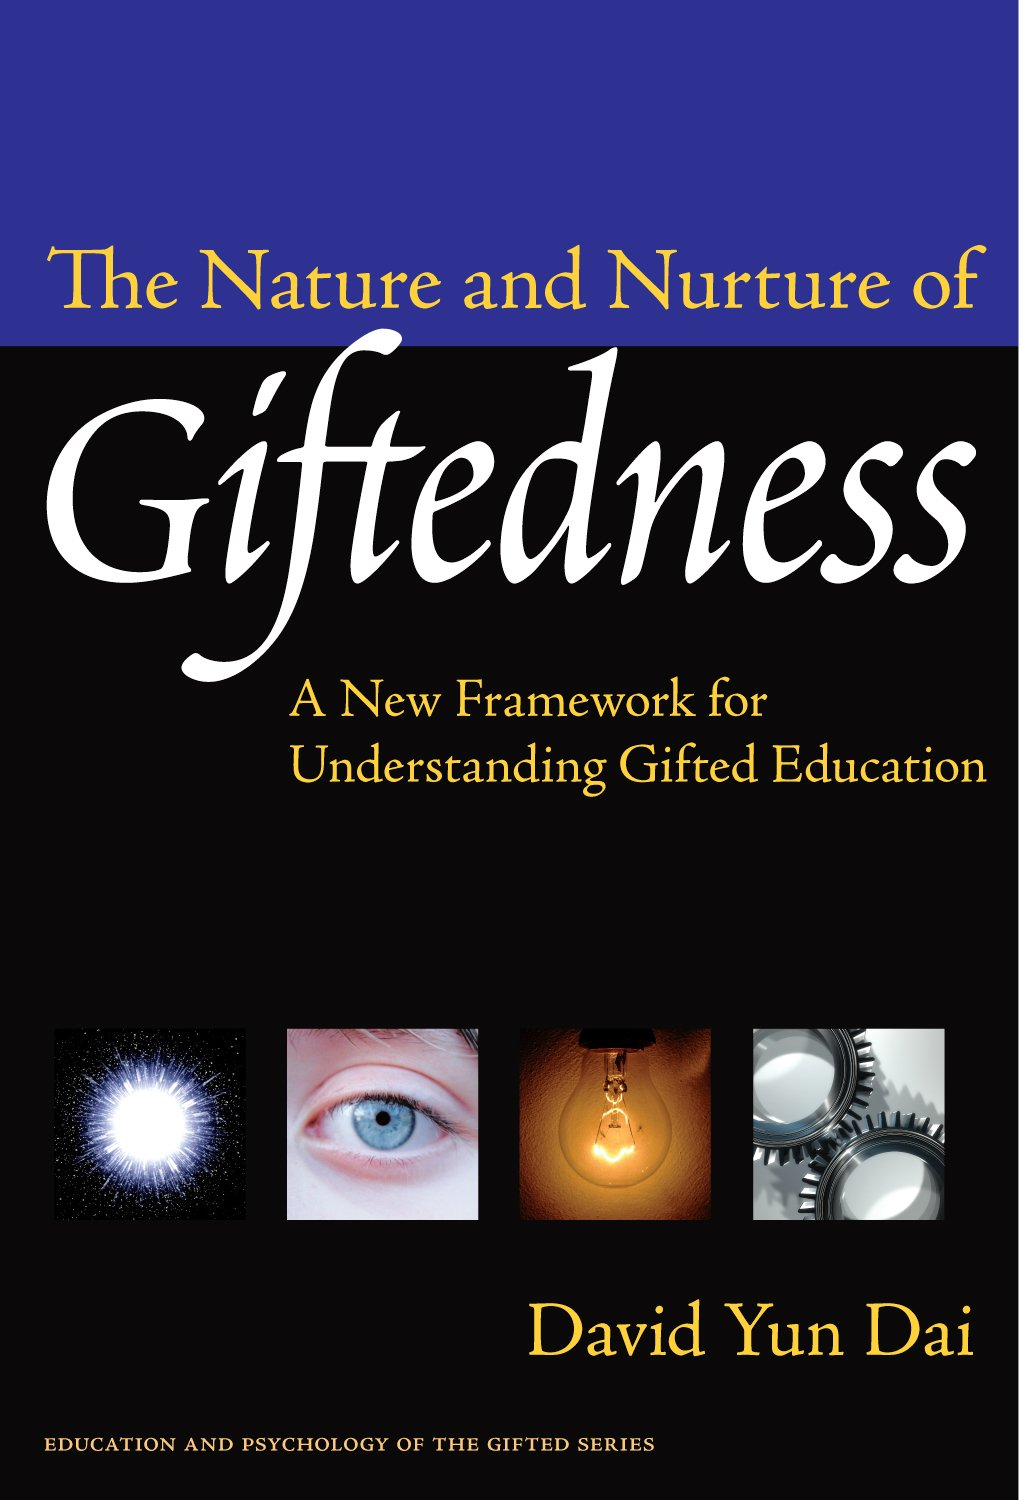 The Nature and Nurture of Giftedness: A New Framework for Understanding Gifted Education (Education and Psychology of the Gifted Series) pdf